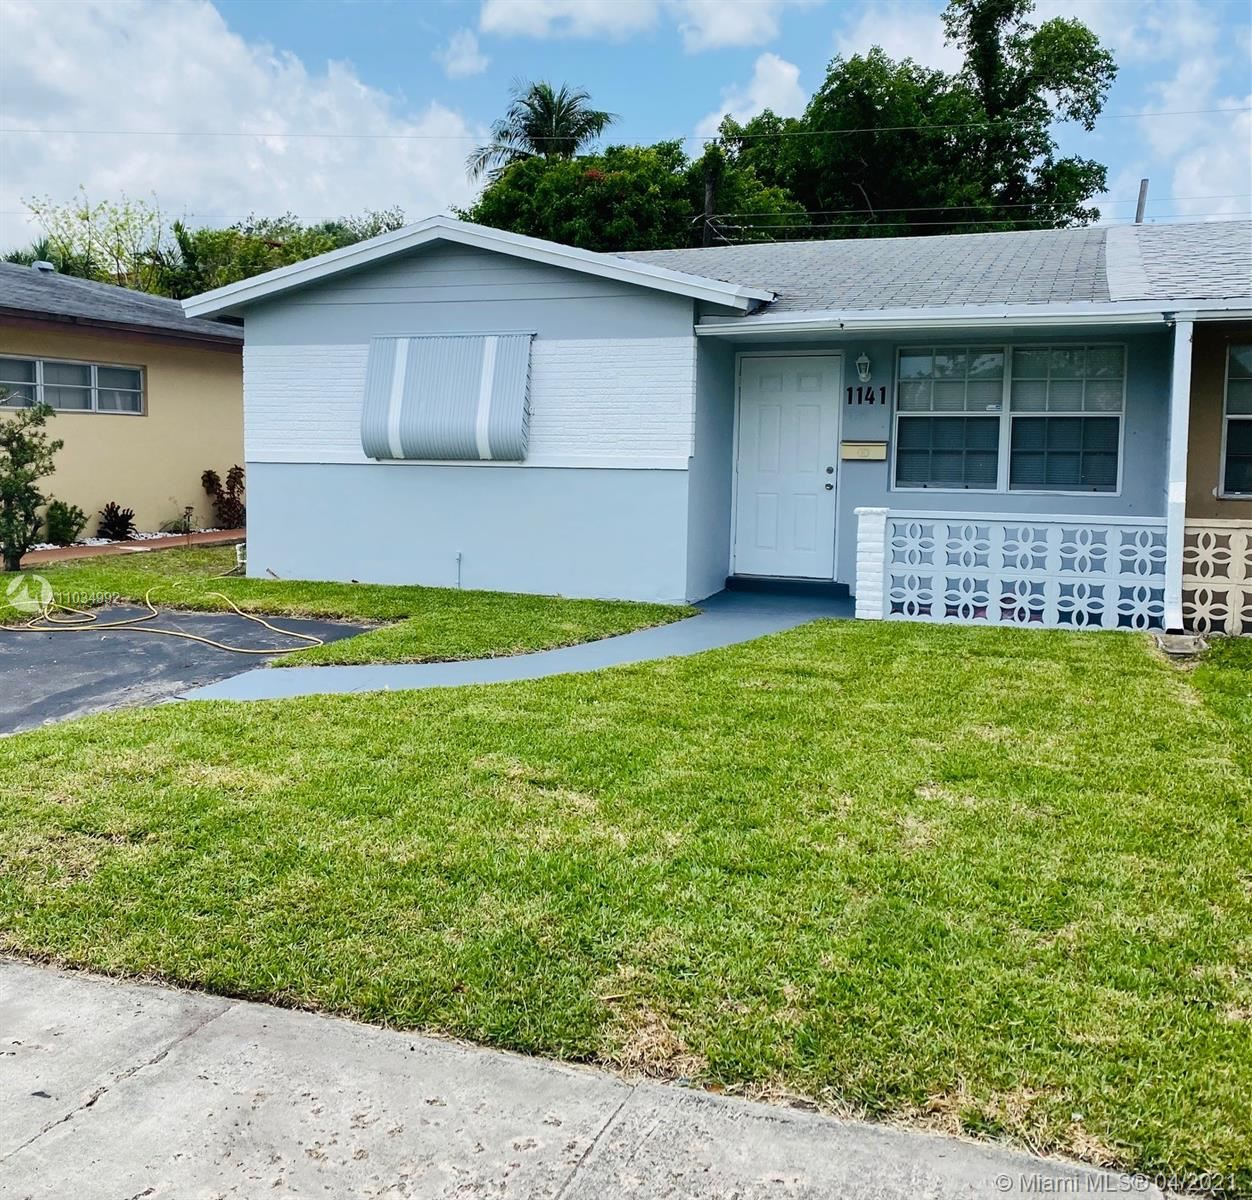 Photo of 1141 NW 58th Ave, Lauderhill, FL 33313 (MLS # A11034992)